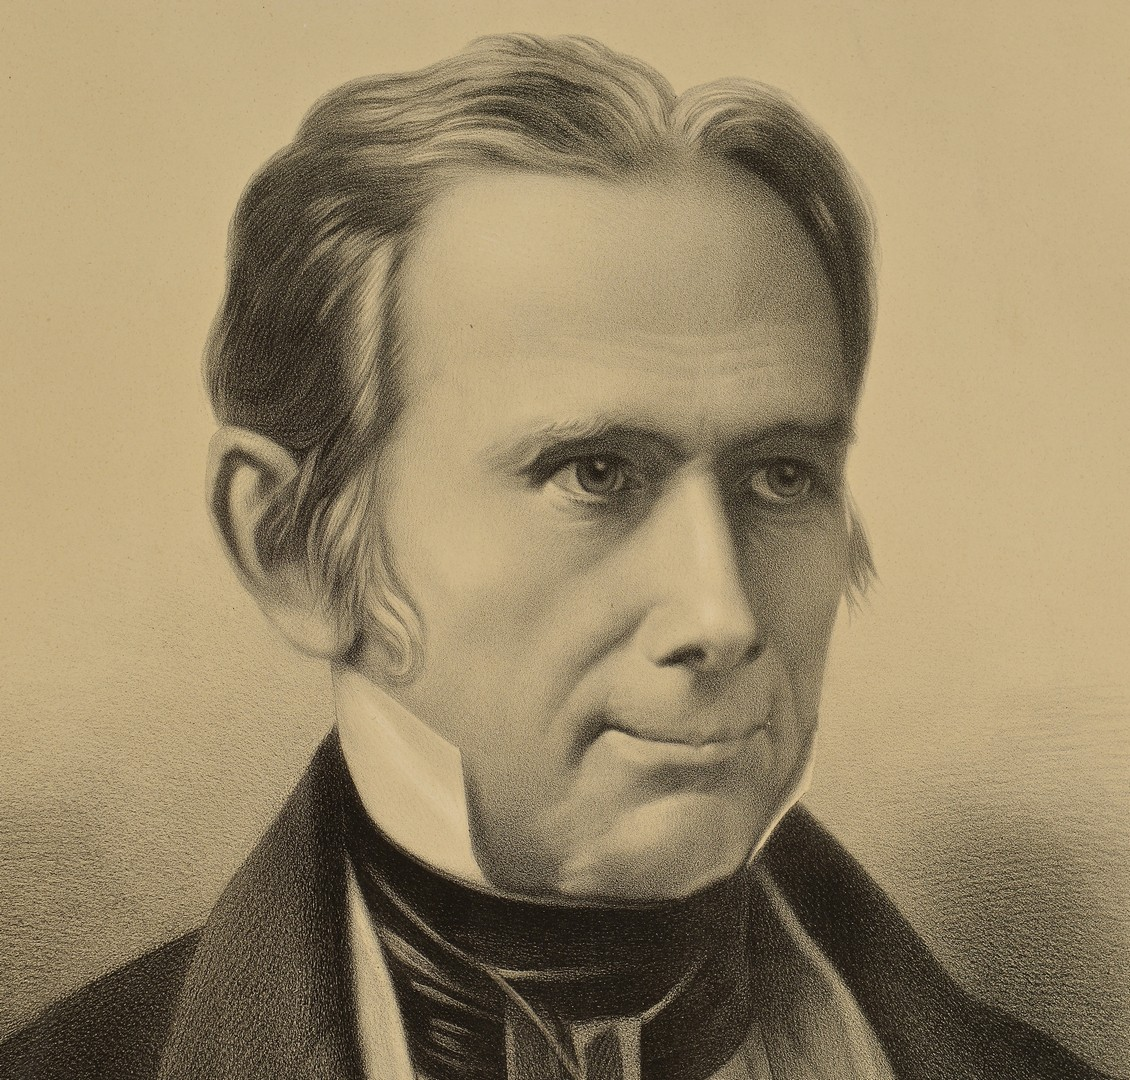 Lot 519: Lithographic portrait of Henry Clay